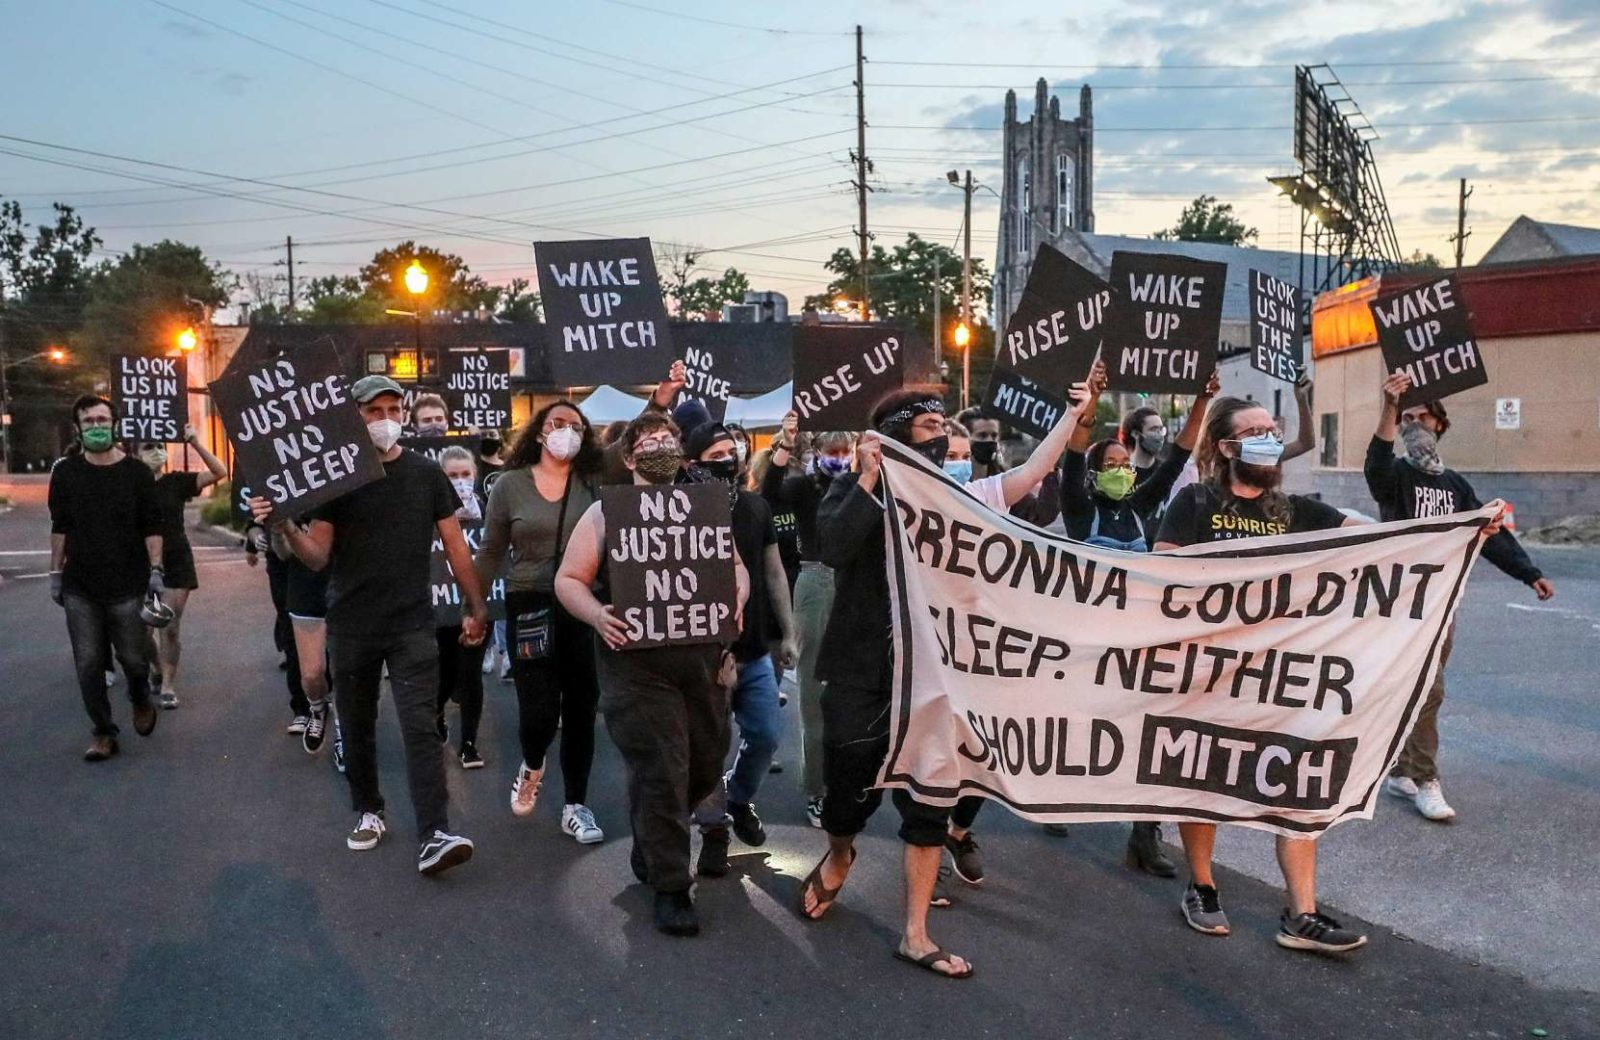 "Sunrise activists march down the street towards Mitch McConnell's KY house as the sun is rising. They're holding a large sign saying ""Breonna Couldn't Sleep. Neither Should Mitch""."